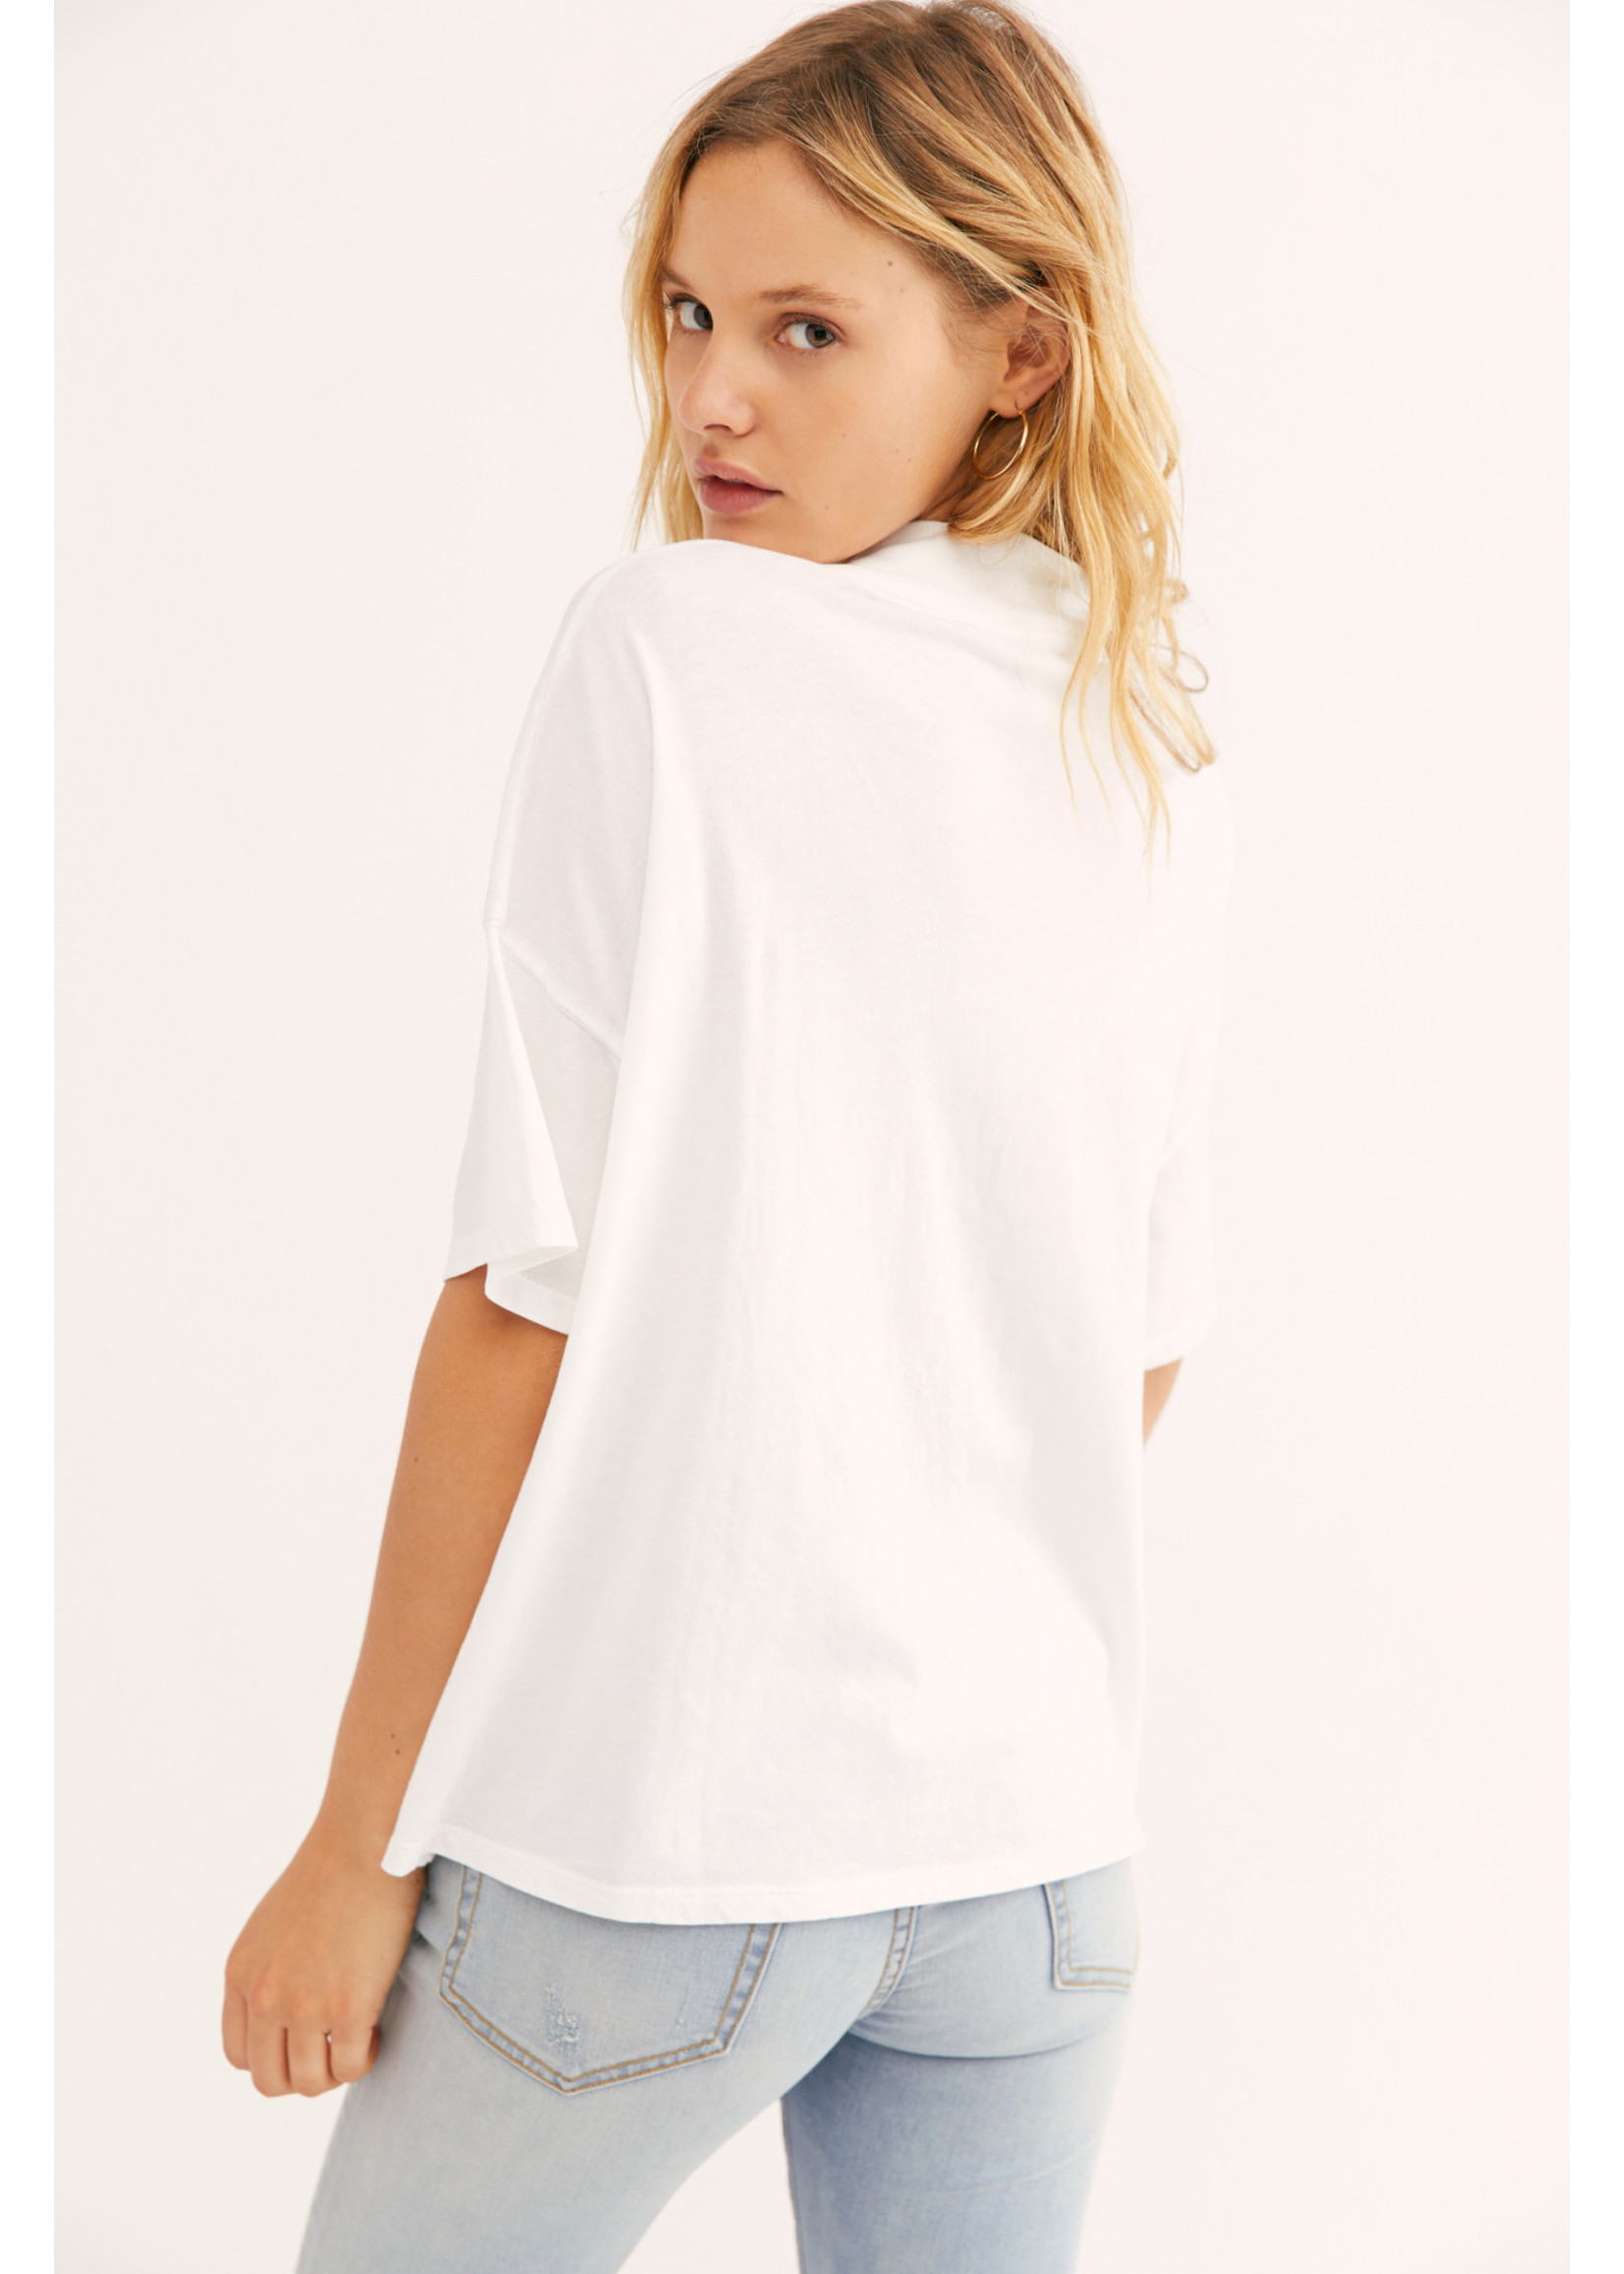 Free People Fearless Tee